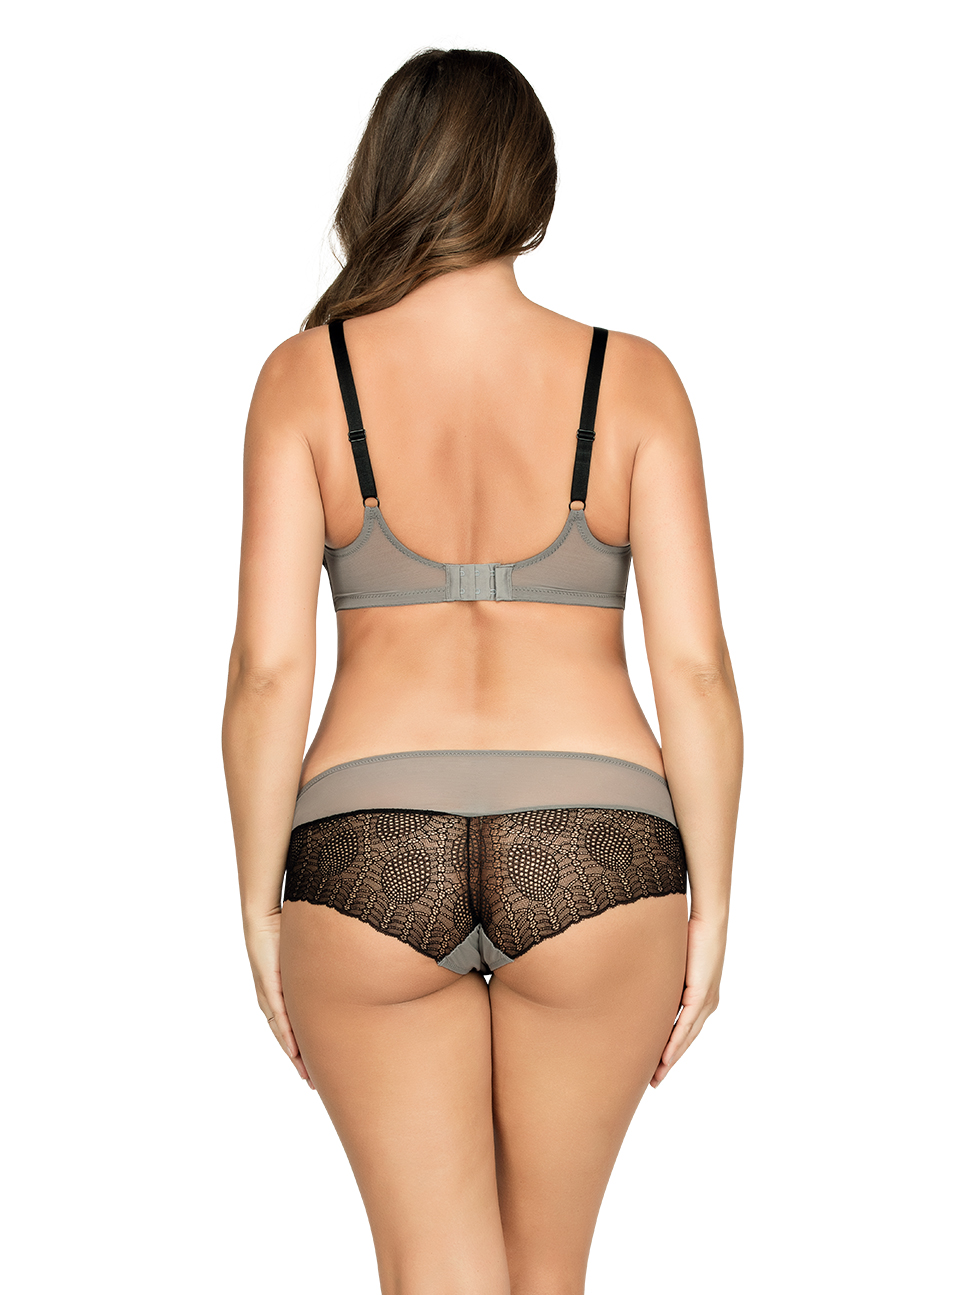 PARFAIT Vanna UnlinedWireBraP5702 HipsterP5705 BlackGray Back - Vanna Unlined Wire Bra Black w Gray P5702